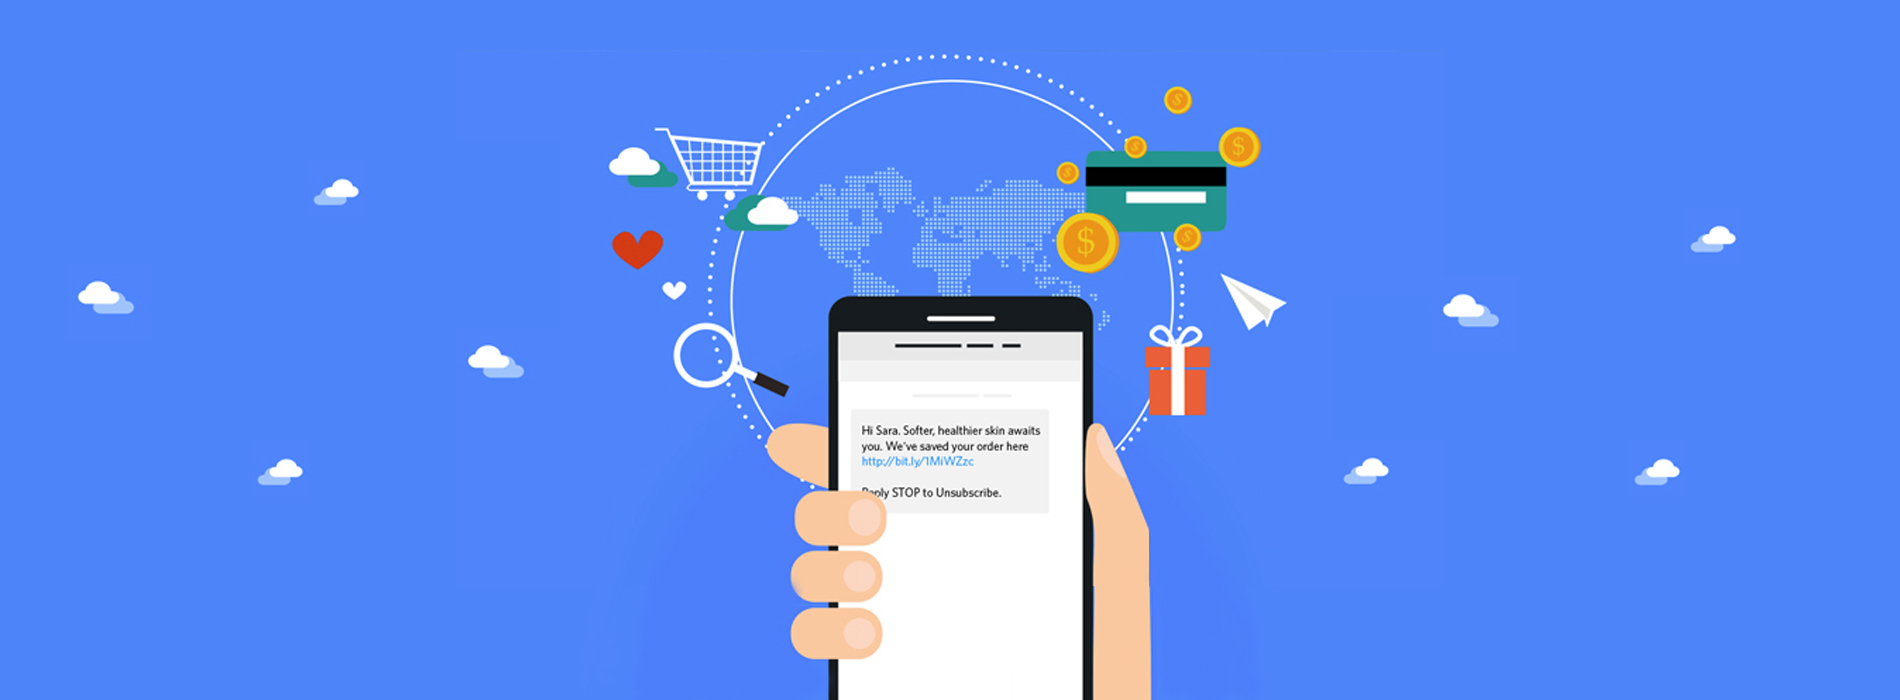 Are you missing a SMS Strategy?